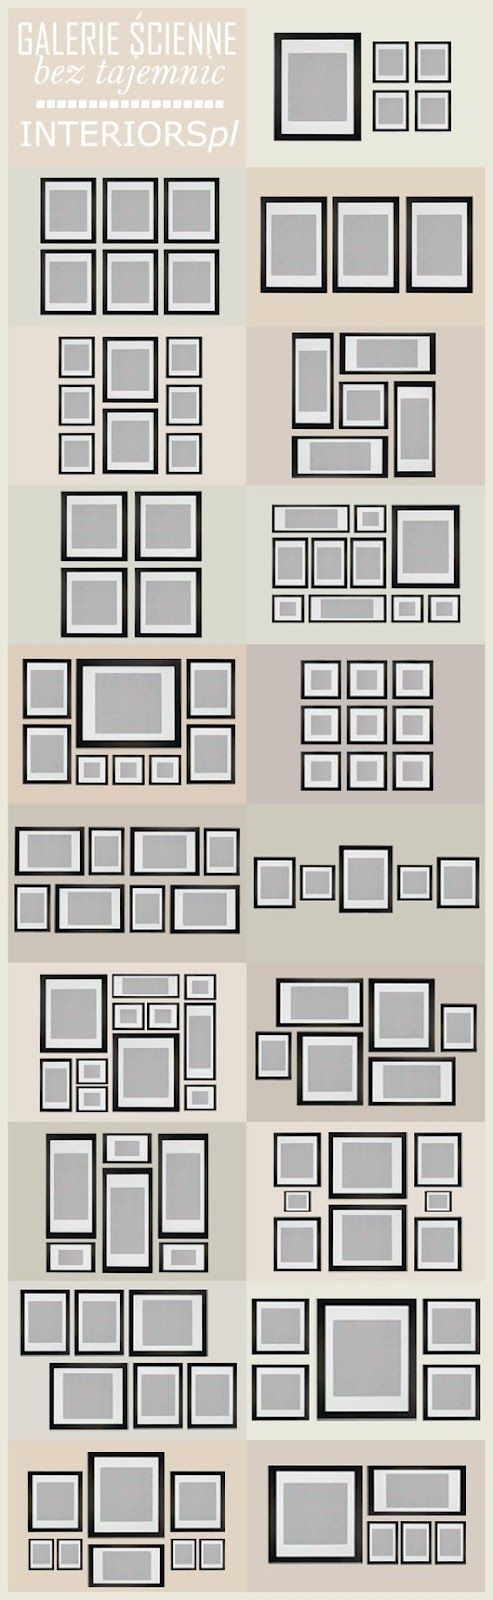 Oriental Rug DIY Gallery Wall Arrangement Ideas plus many other guides such as yardage guides